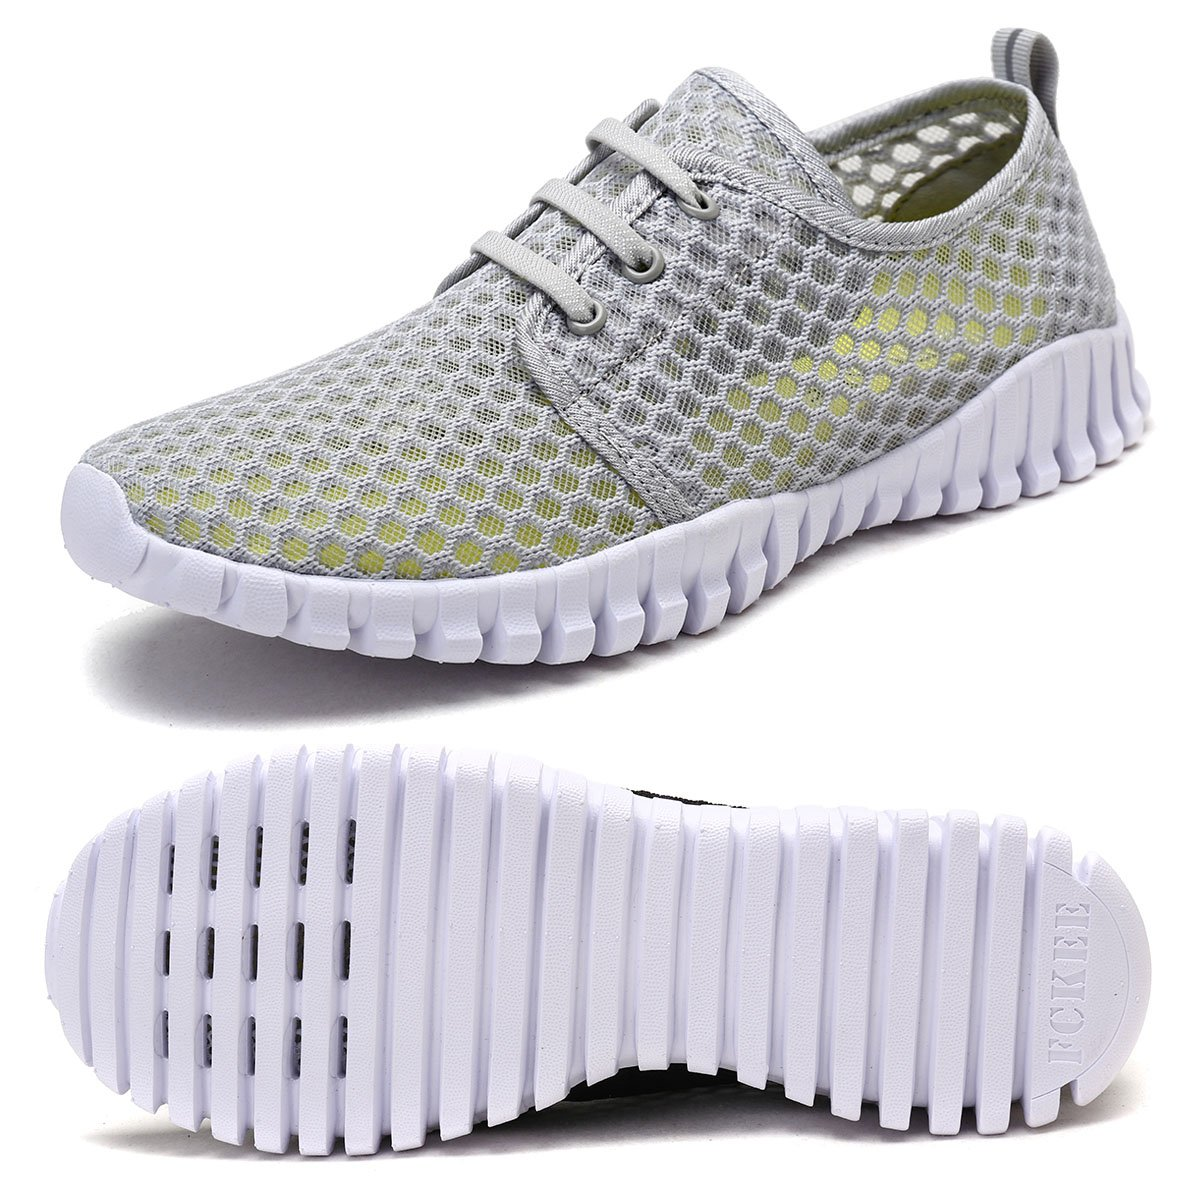 FCKEE Quick Drying Mesh Water Aqua Shoes for Men and Women,MBD,Gray-41